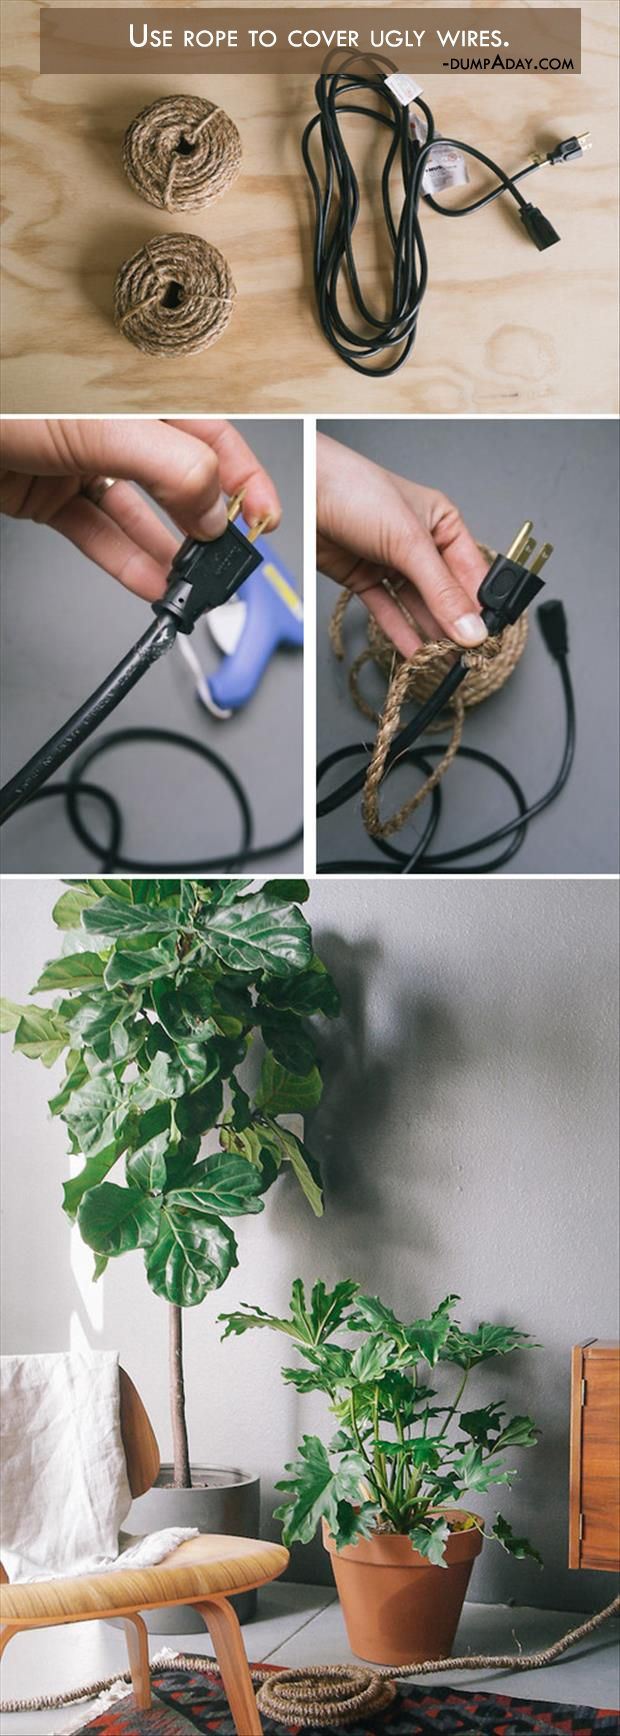 Wrap the cords in twine: Covers Cords, Crafts Ideas, Electric Cords, Covers Wire, Wire Covers, Great Ideas, Life Hacks, Wraps Wire, Wraps Cords